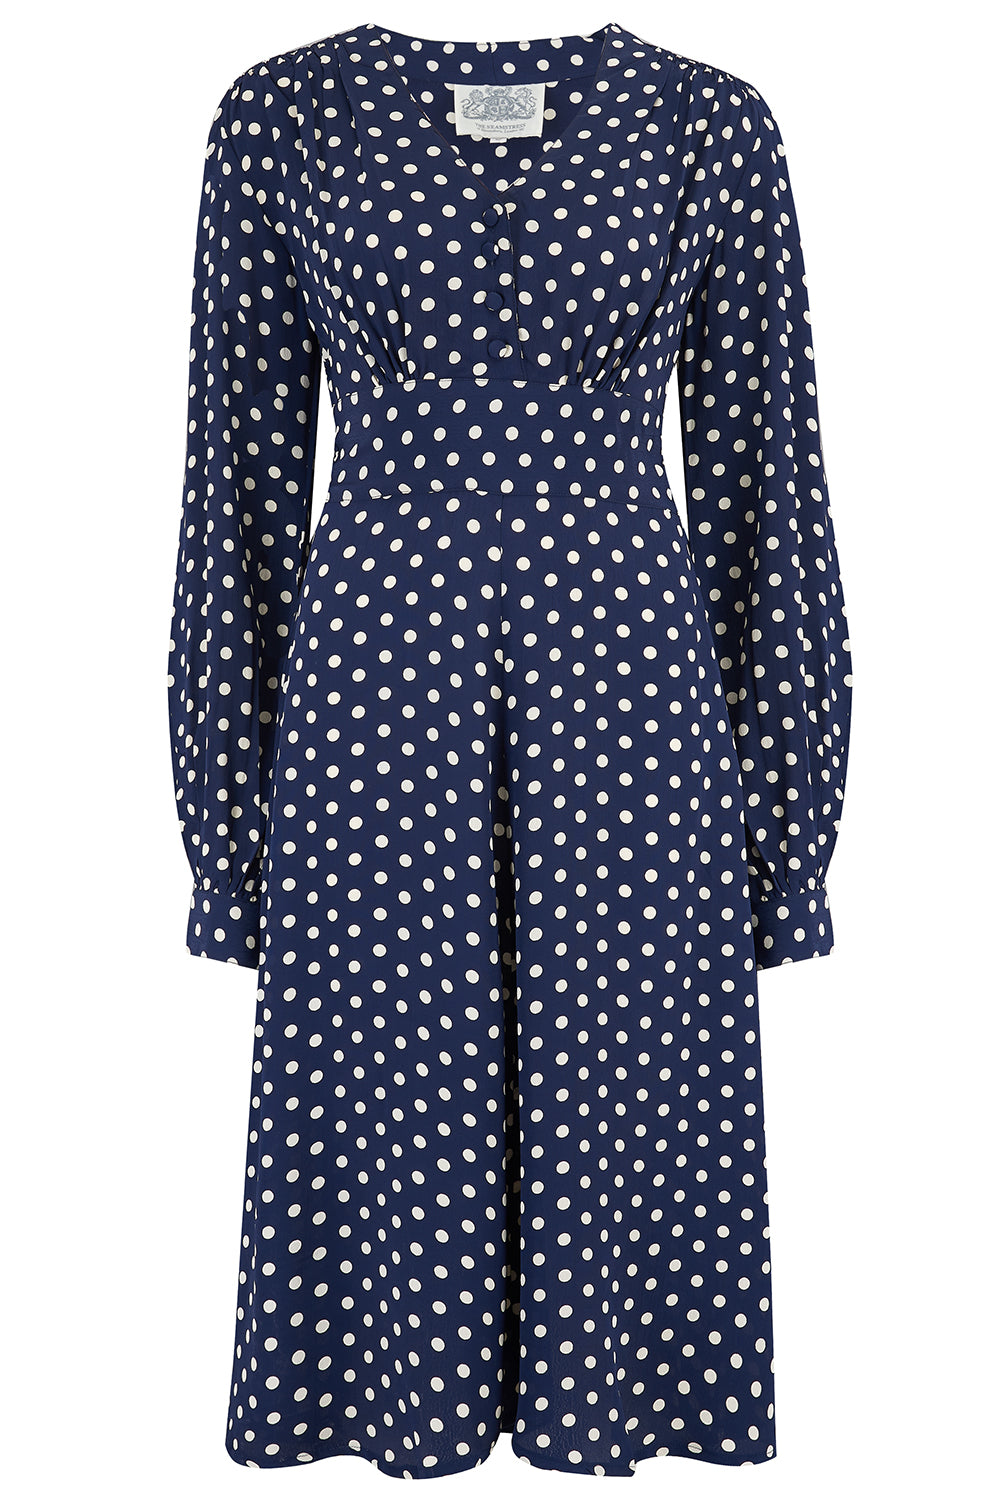 1940s Dress Styles Ava Dress in Navy Polka Dot Print Classic 1940s Style Long Sleeve Dress £89.00 AT vintagedancer.com